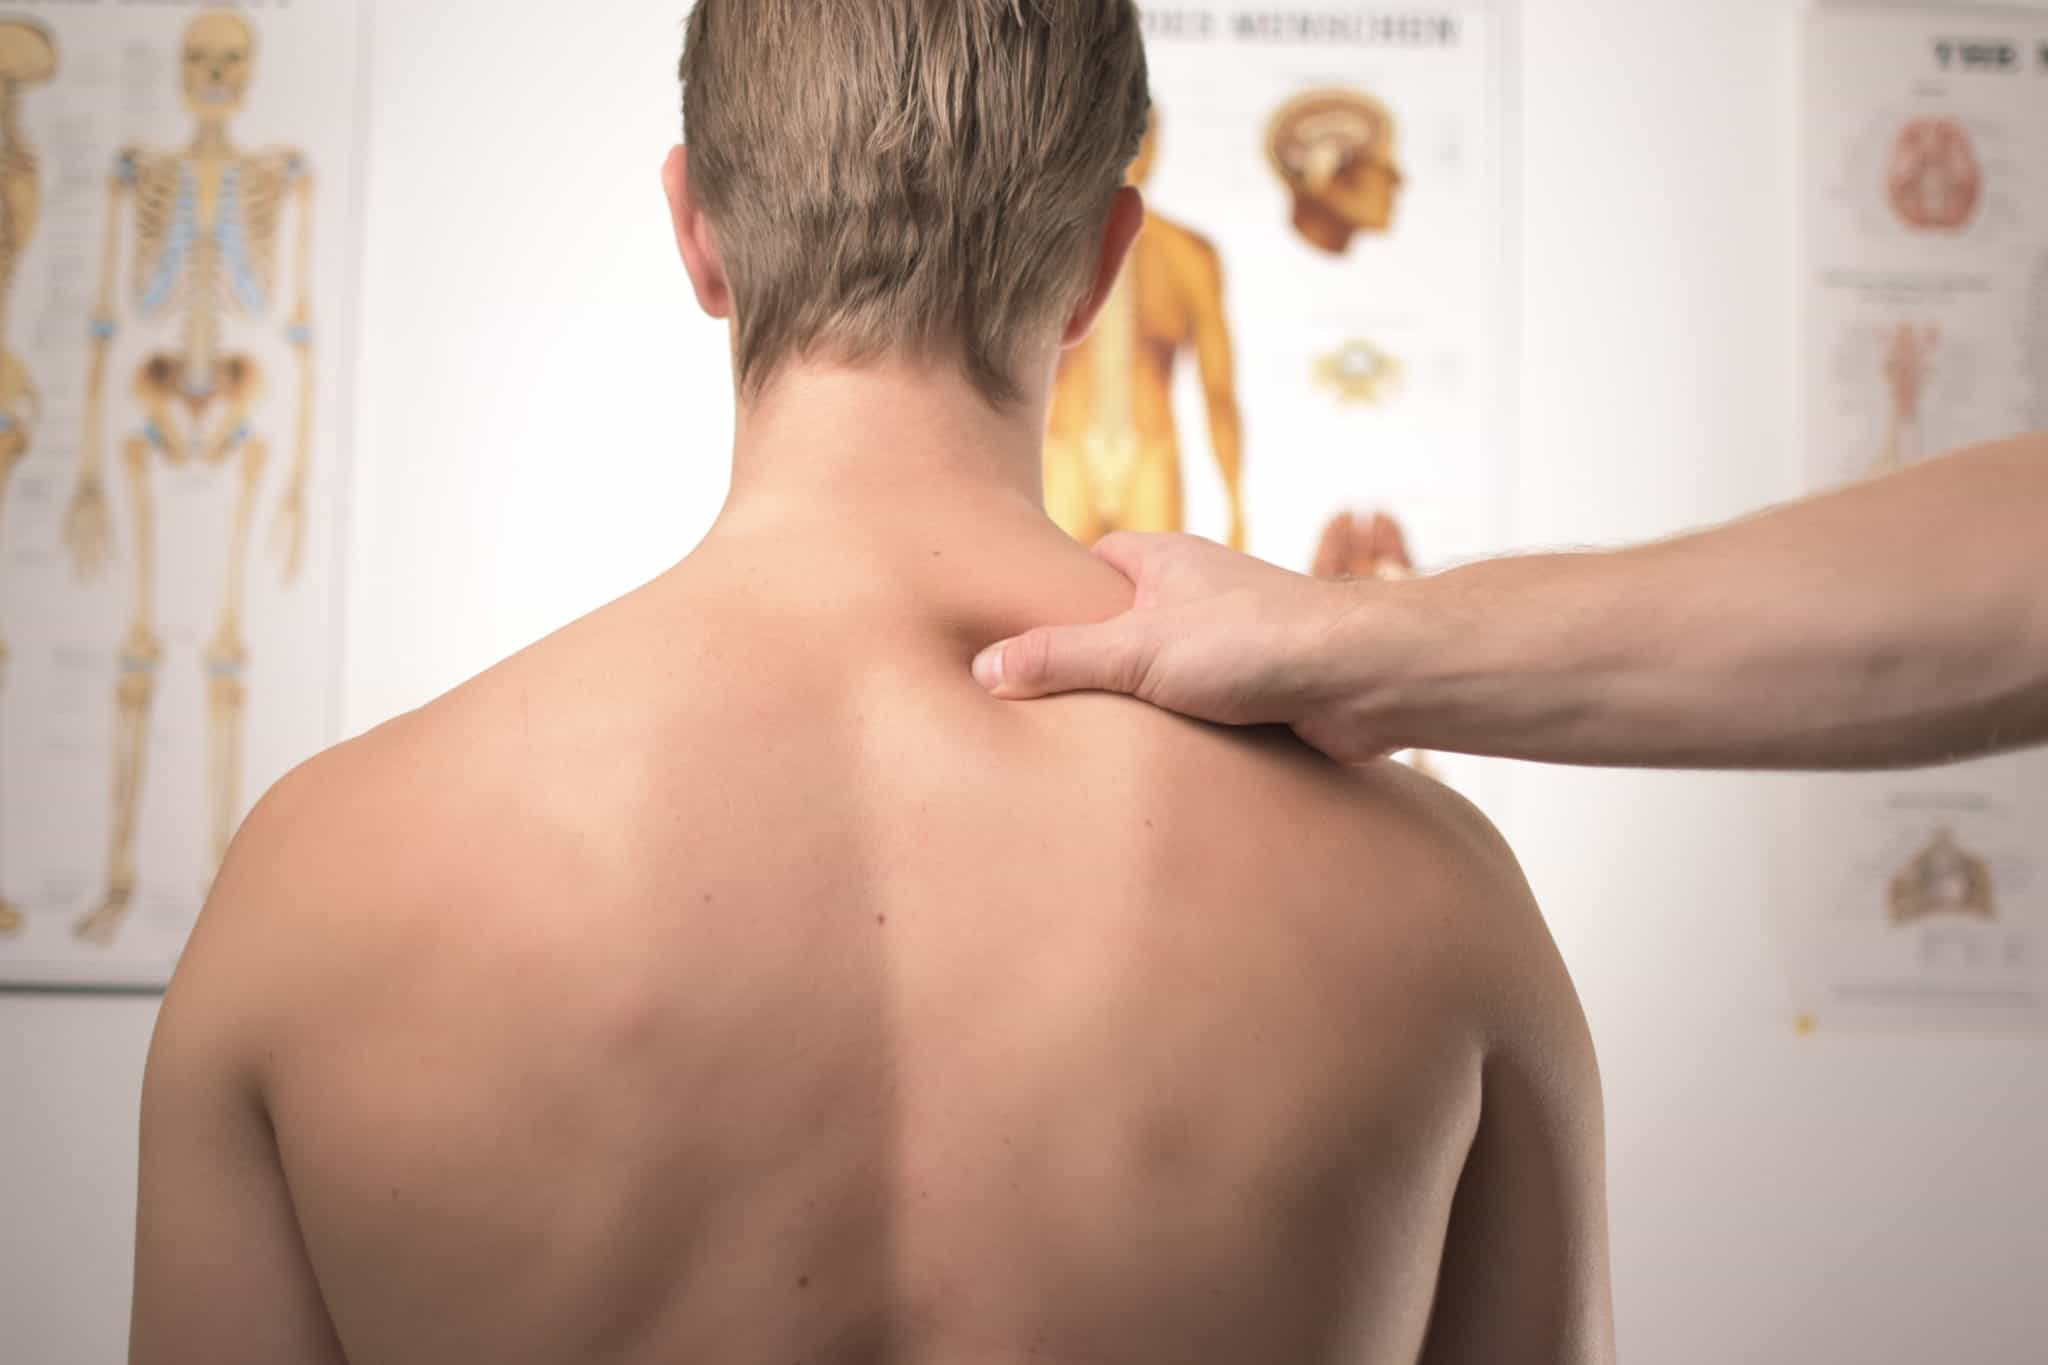 Why You Should Consider Preventative Chiropractic Care